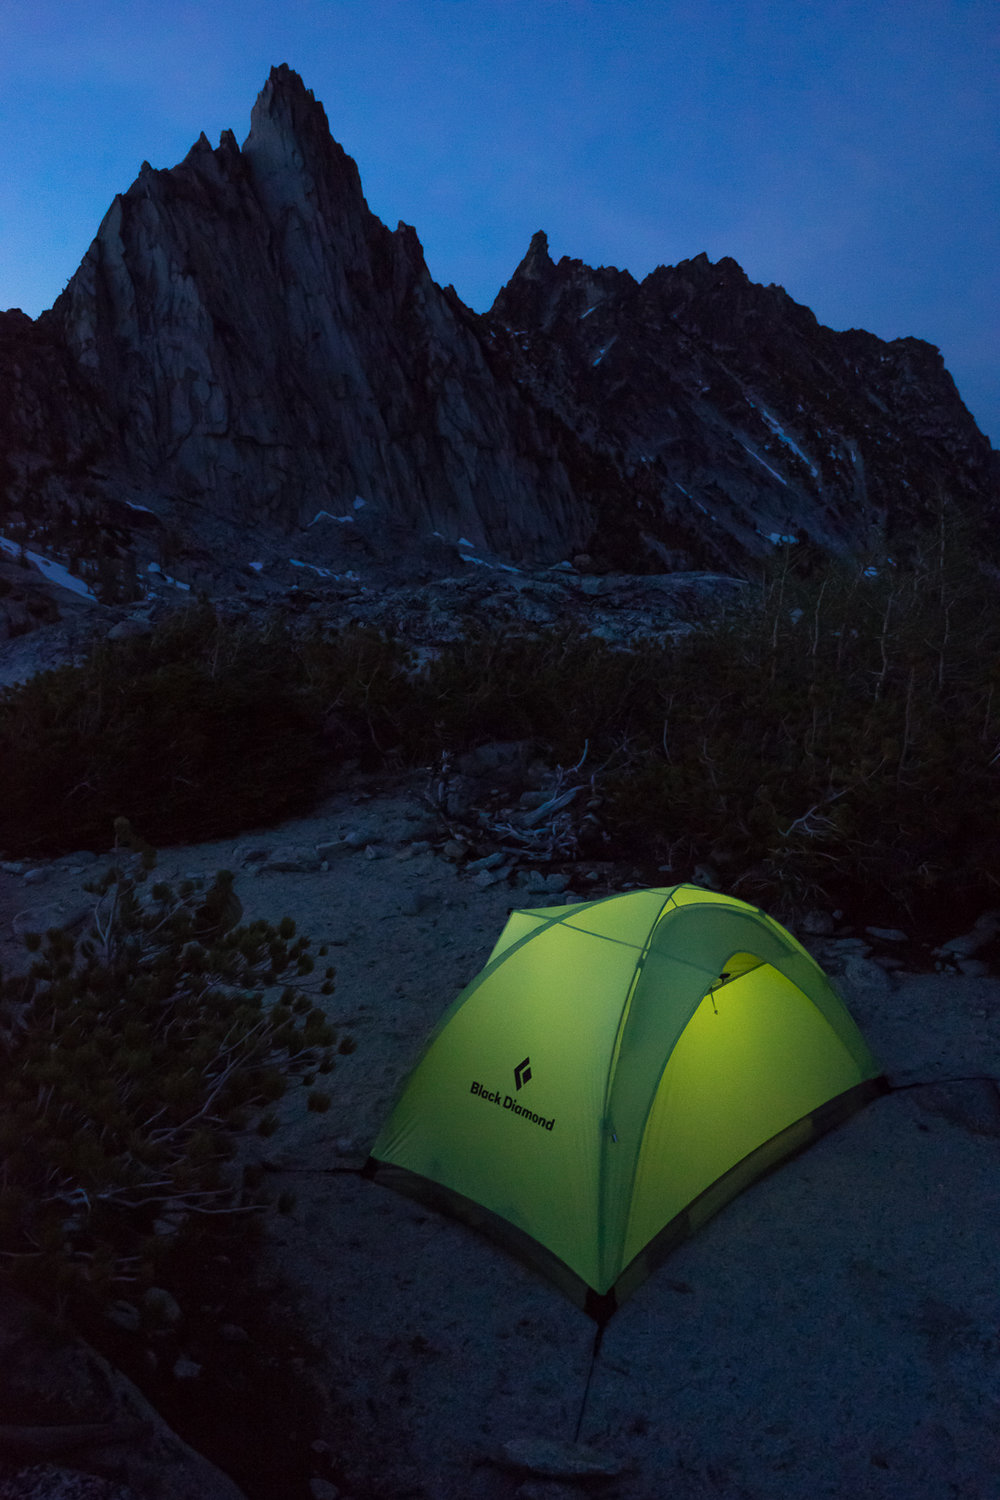 Dusk at camp below Prussik Peak.